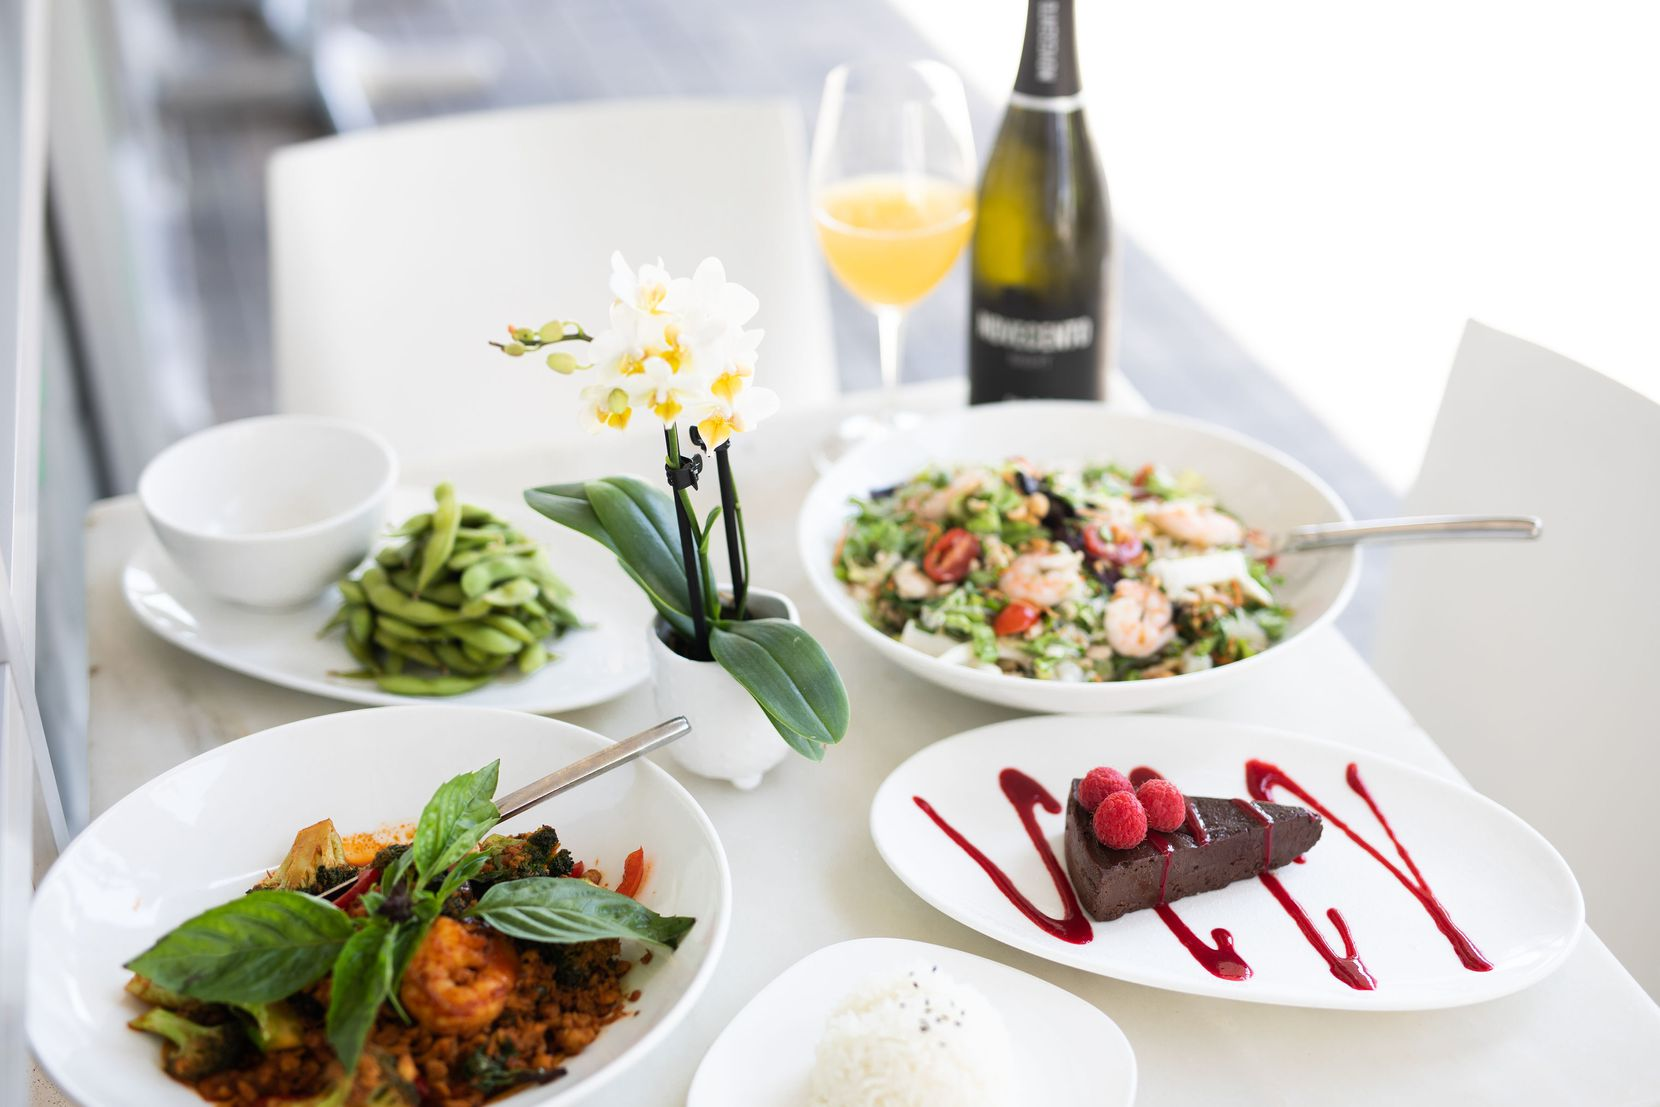 Asian Mint's Thai Mother s Day Meal Kit includes edamame, Asian noodle salad, shrimp and chicken basil with jasmine rice, chocolate flourless cake and a pineapple mimosa kit.